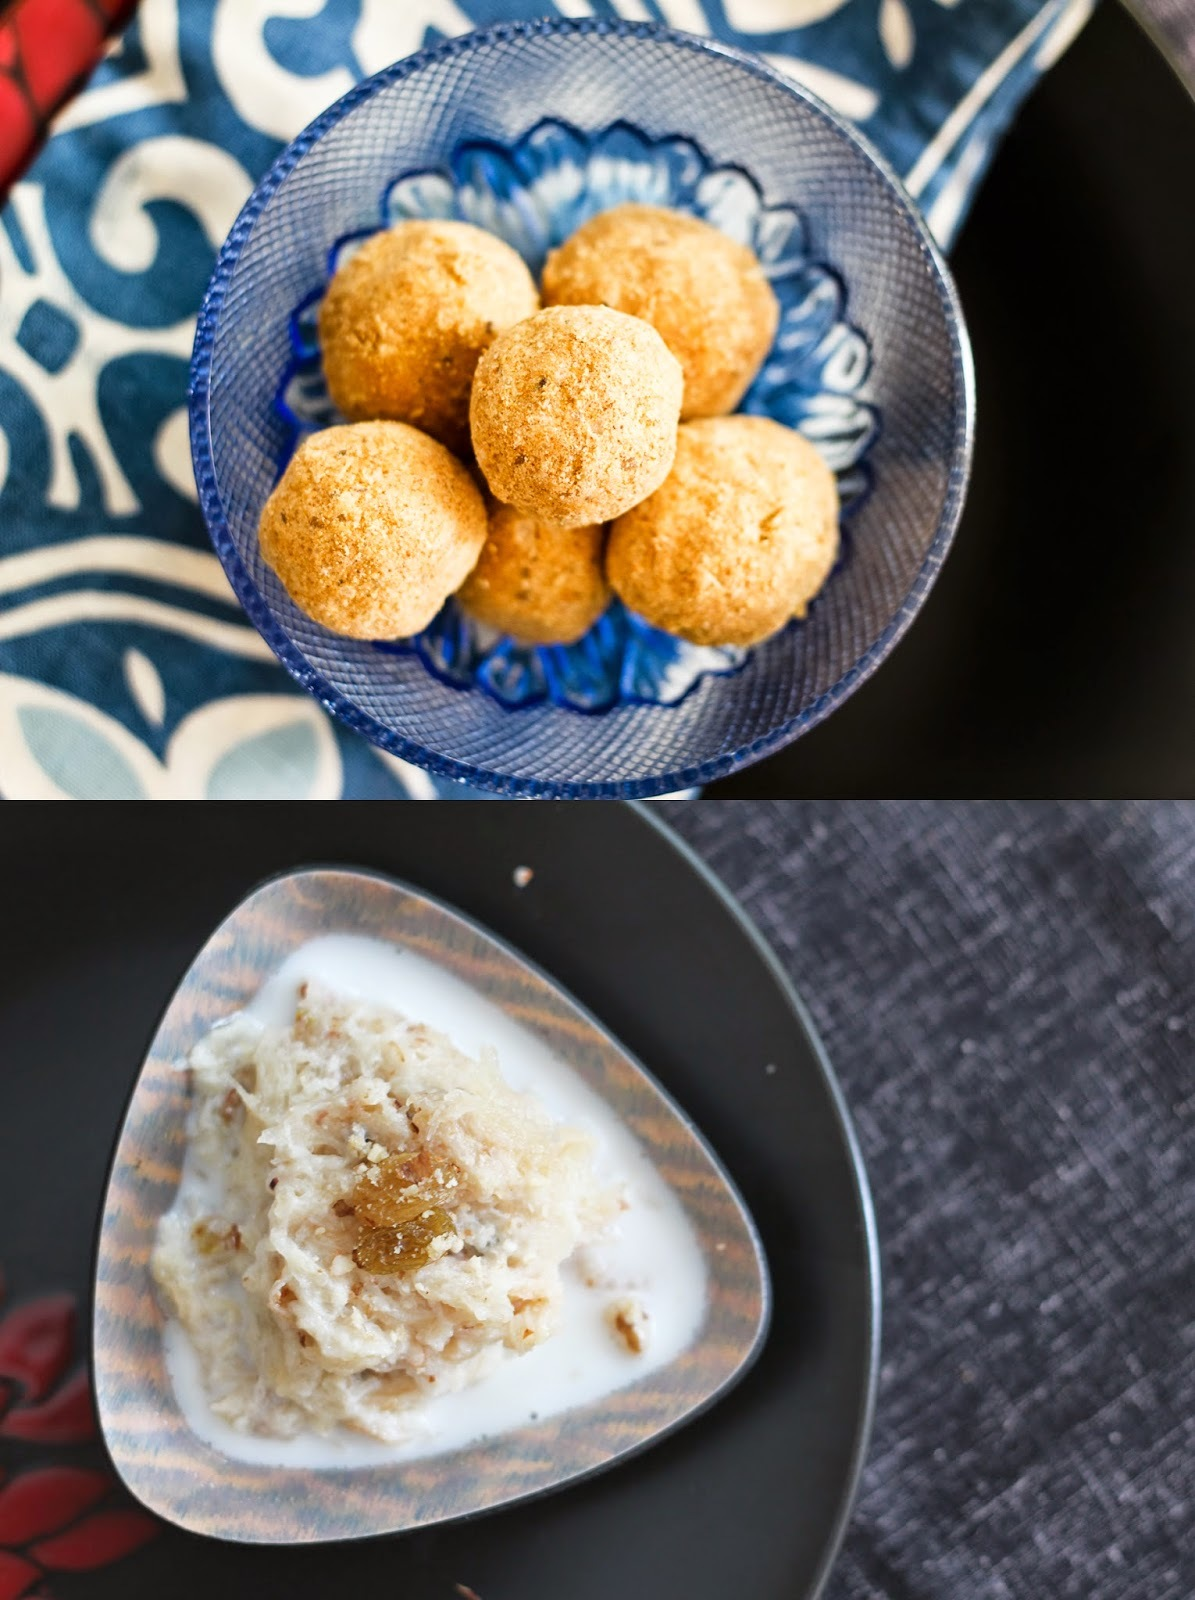 F for Feni (Pheni) Besan Laddu (Shredded Vermicelli Chickpea Flour Ladoo) + 2-minute Feni Payasam Recipe